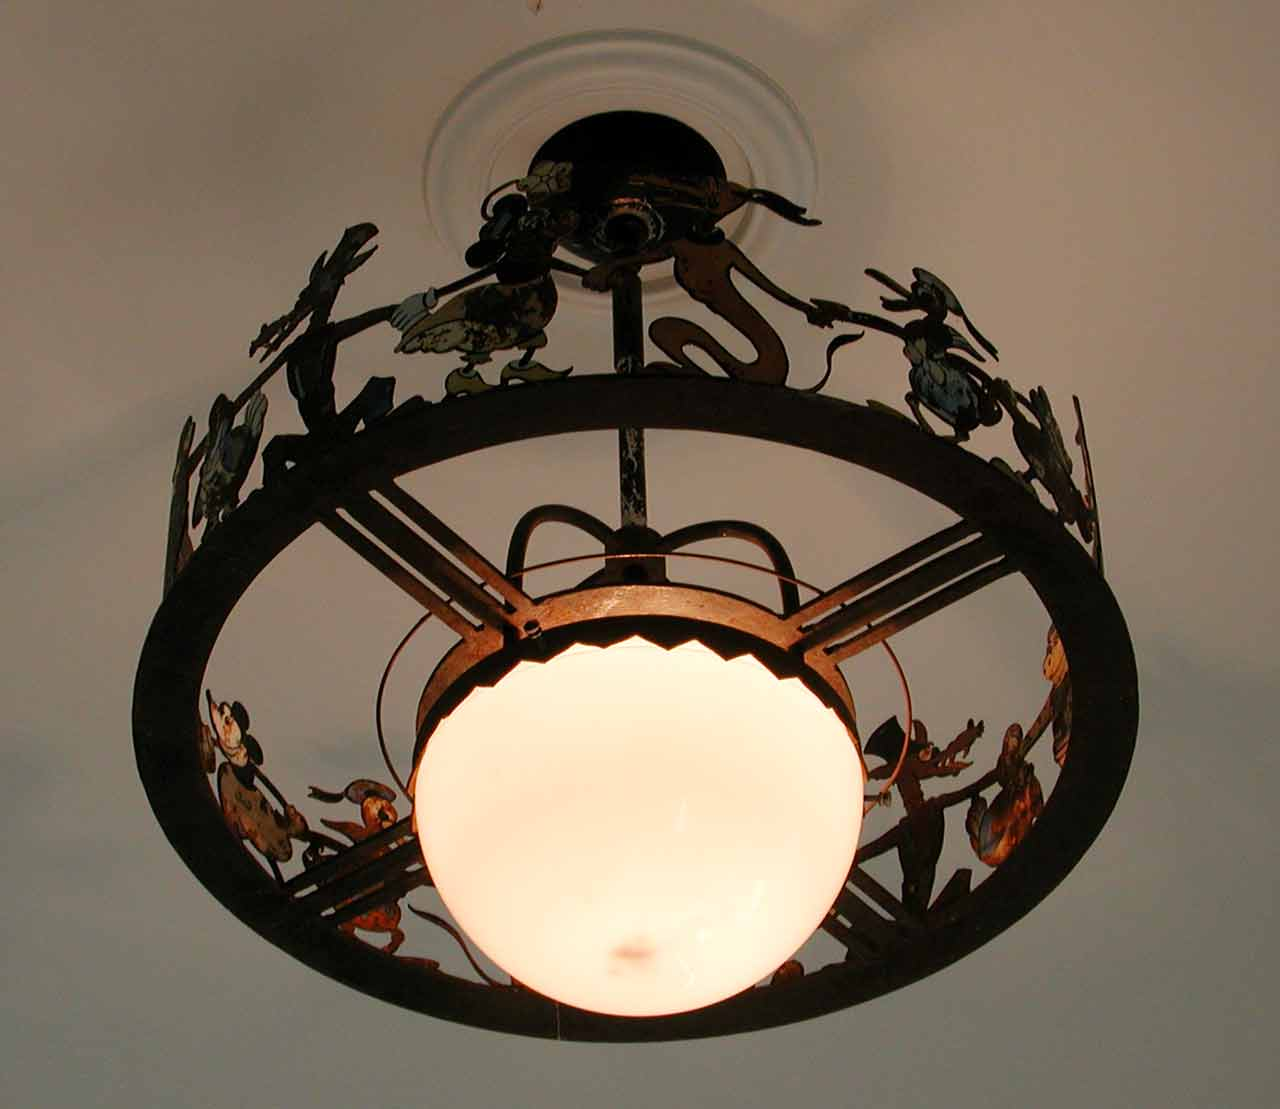 Mickey Mouse Ceiling Light Fixture